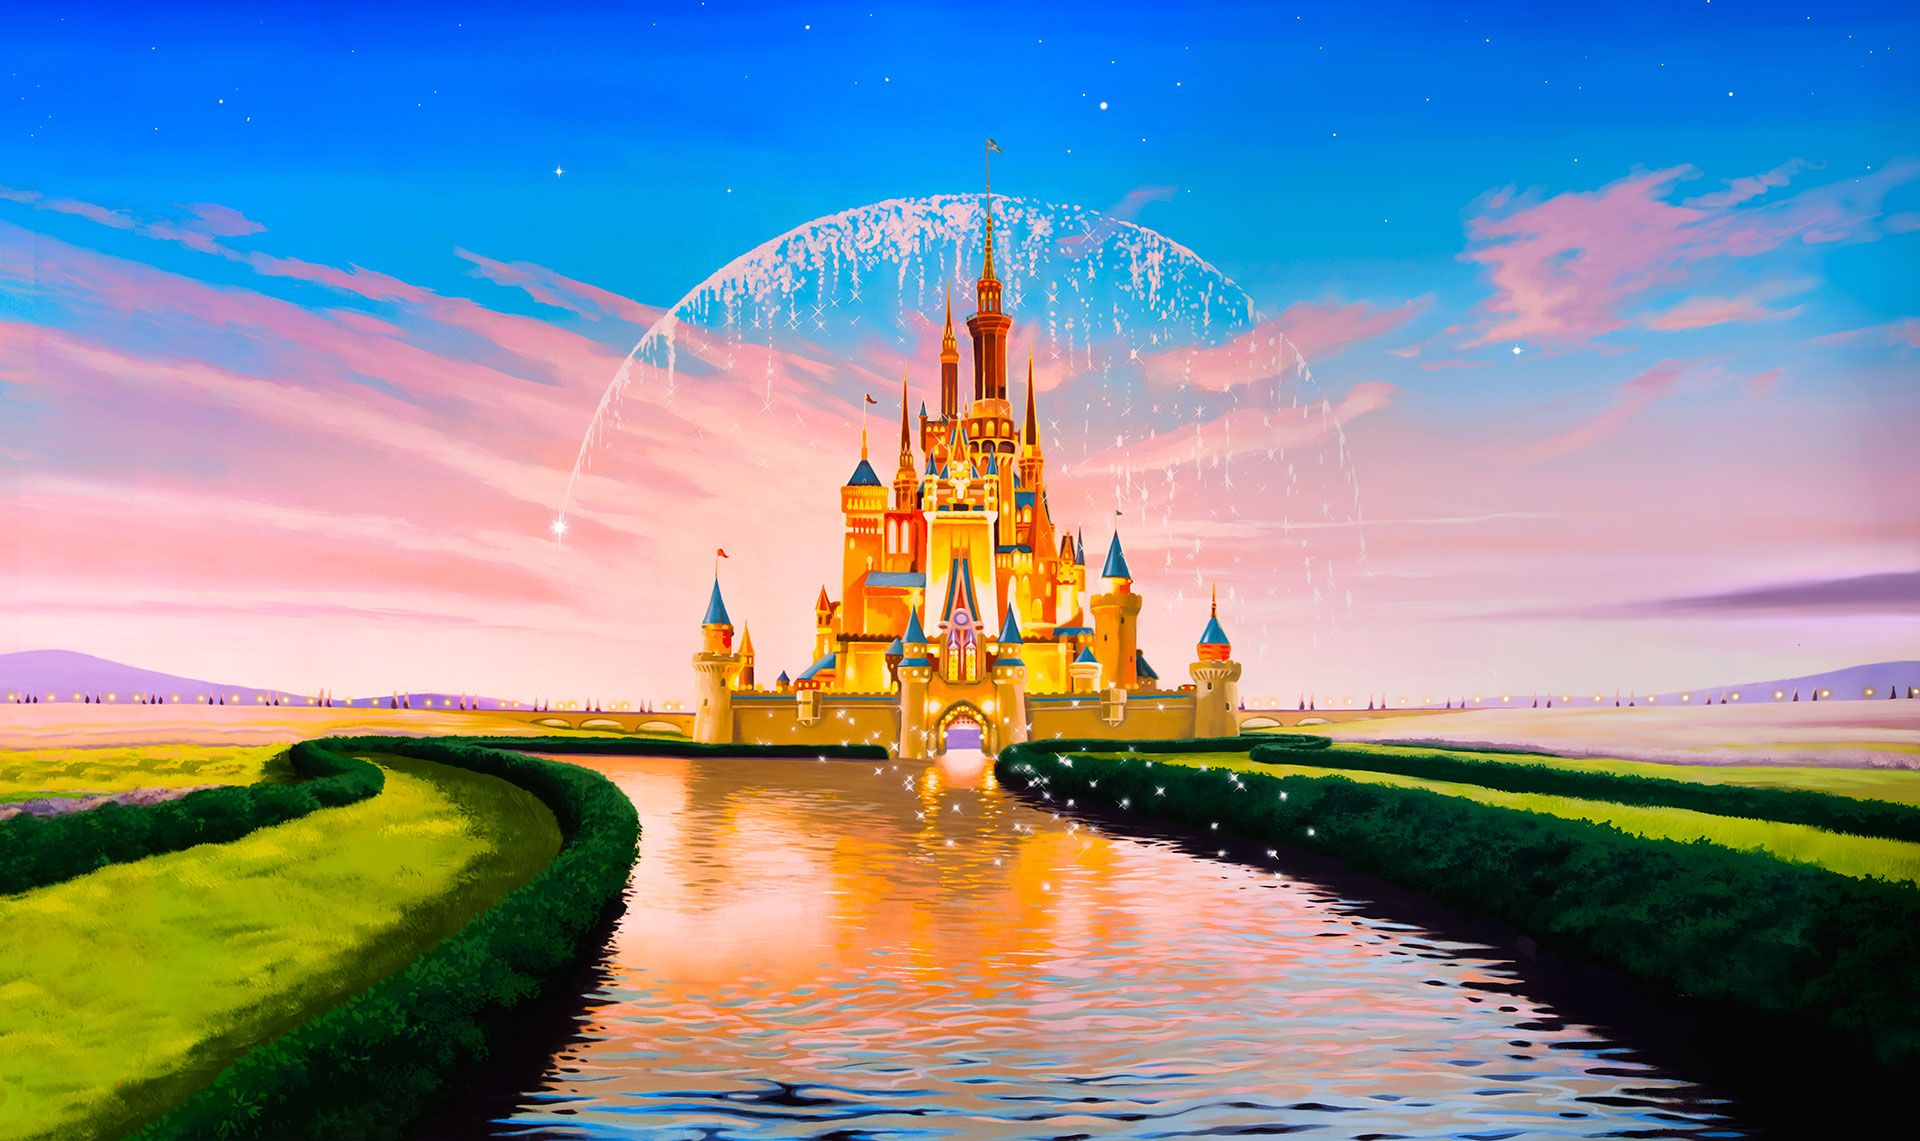 Anime Wallpaper Disney Castle Desktop Wallpapers Hd